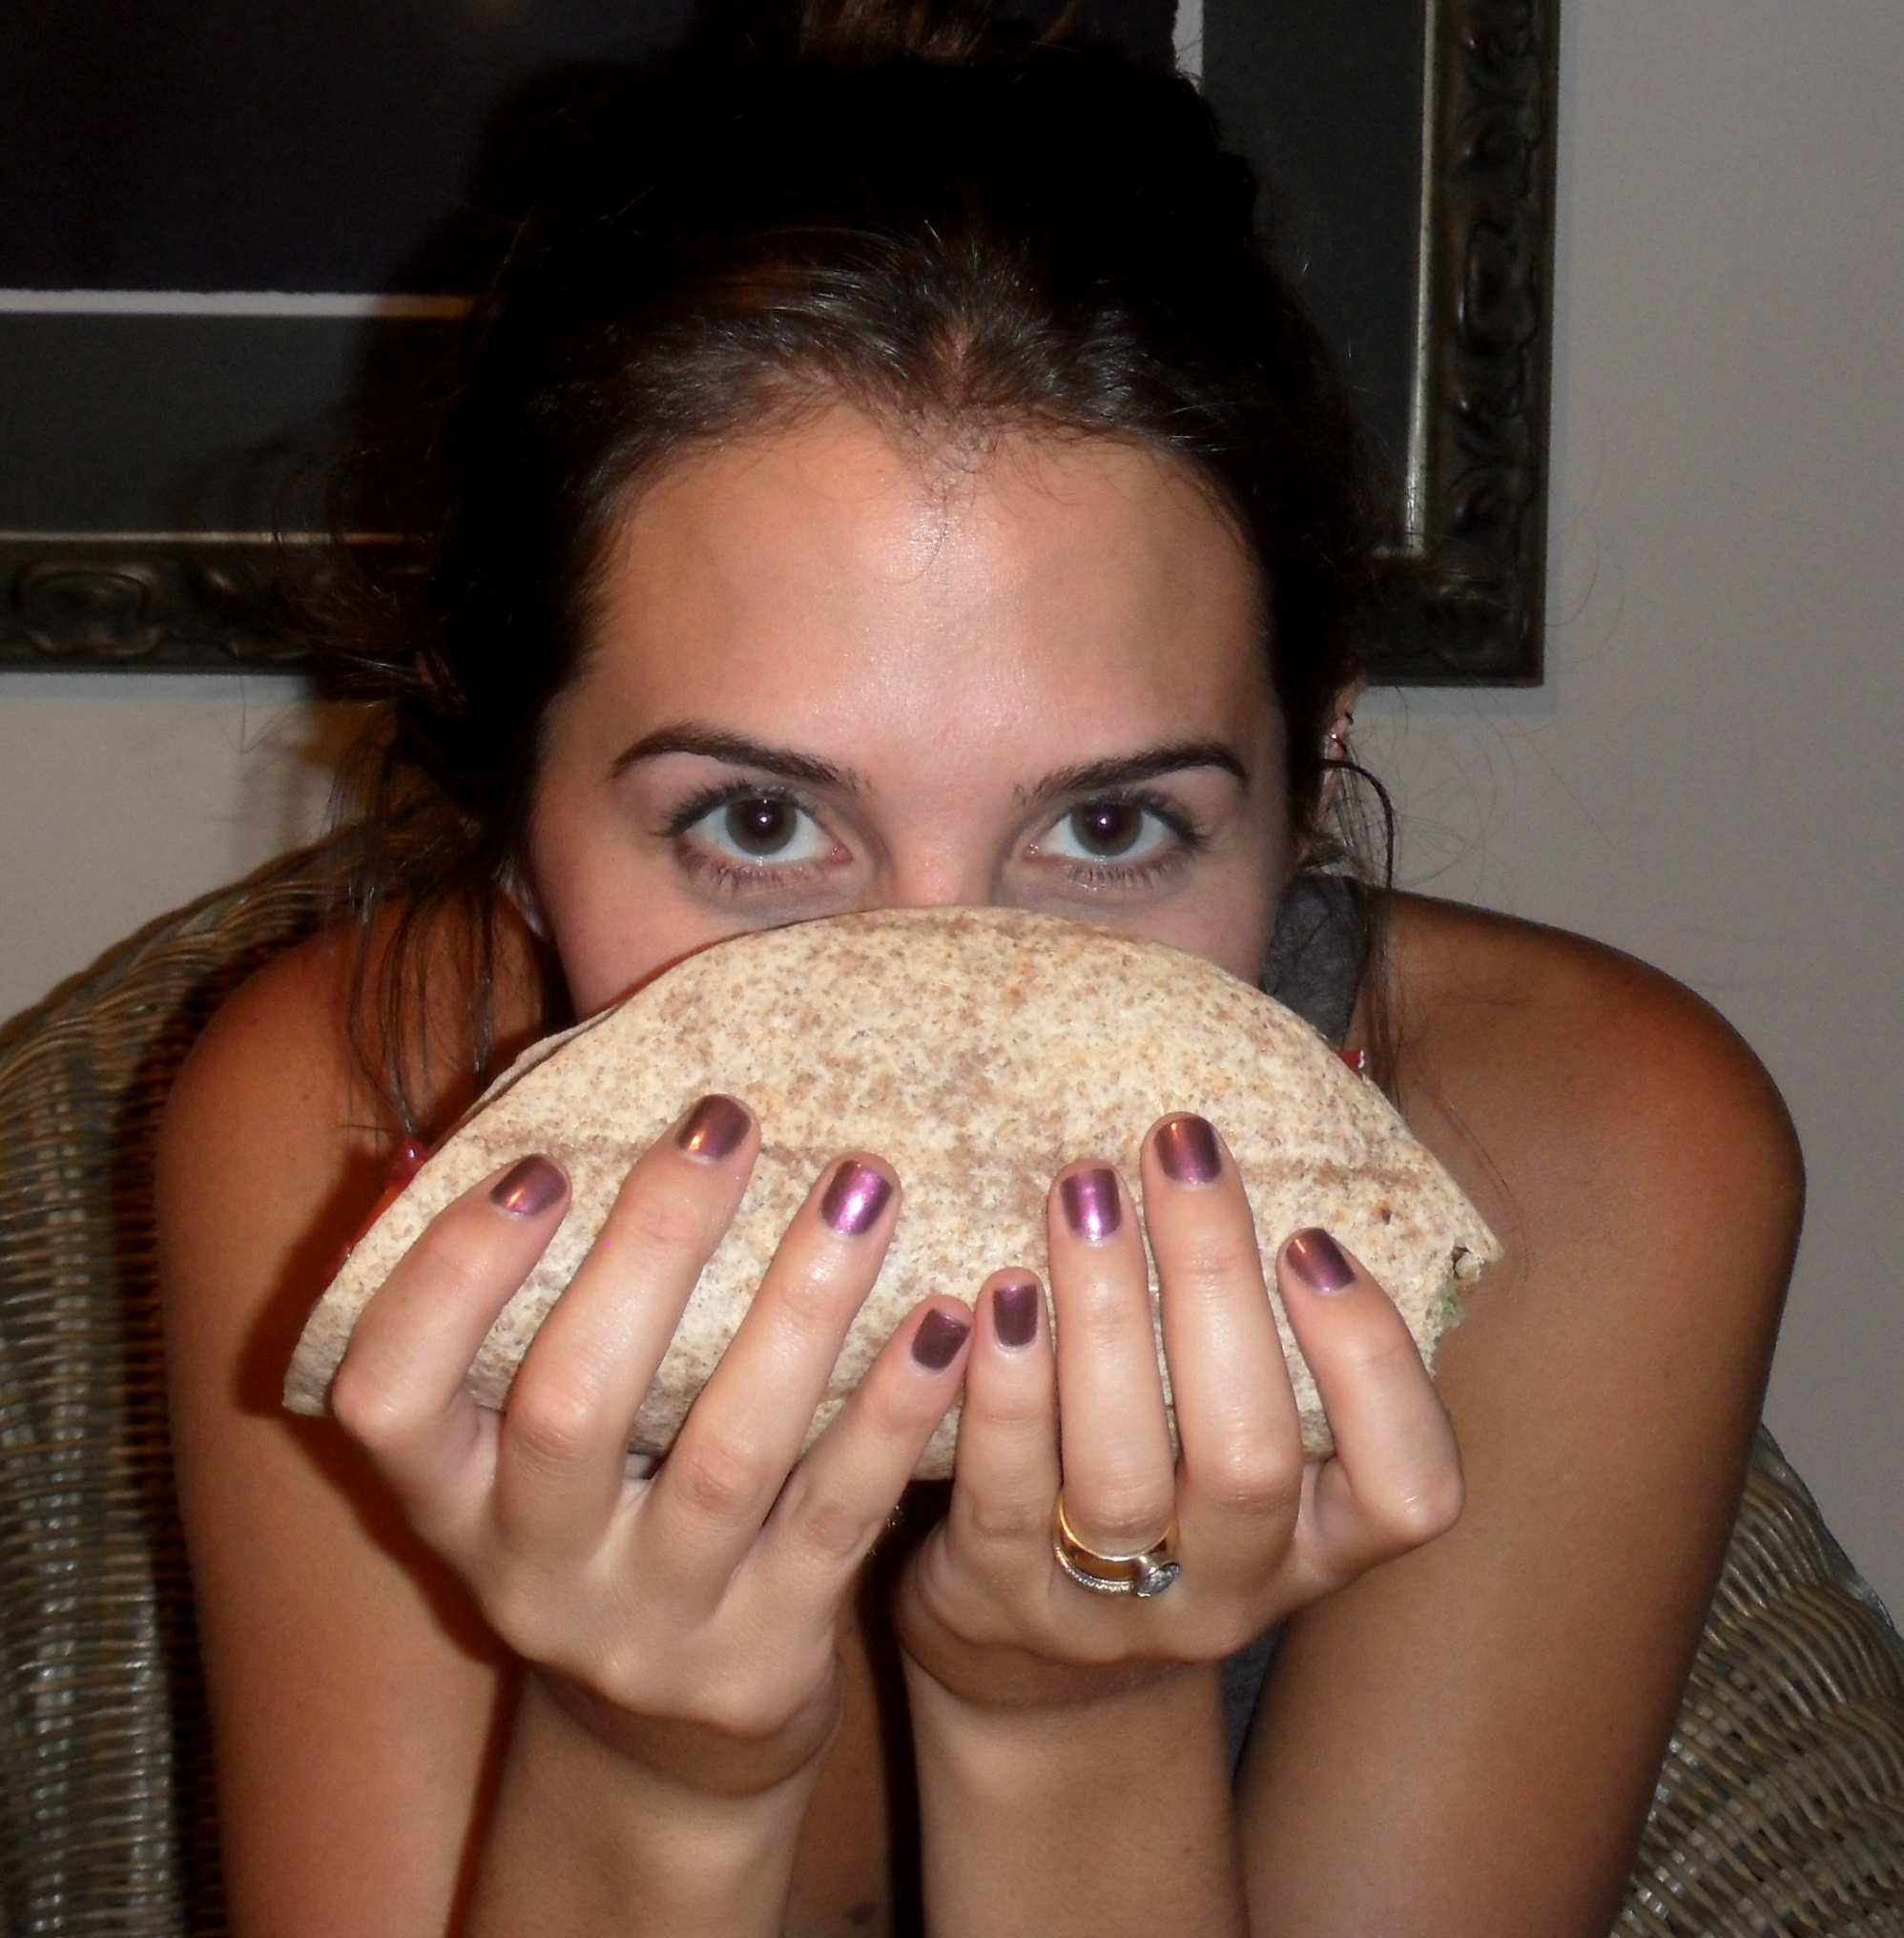 This vegan taco/burrito was so uber delicious and almost the size of my head.